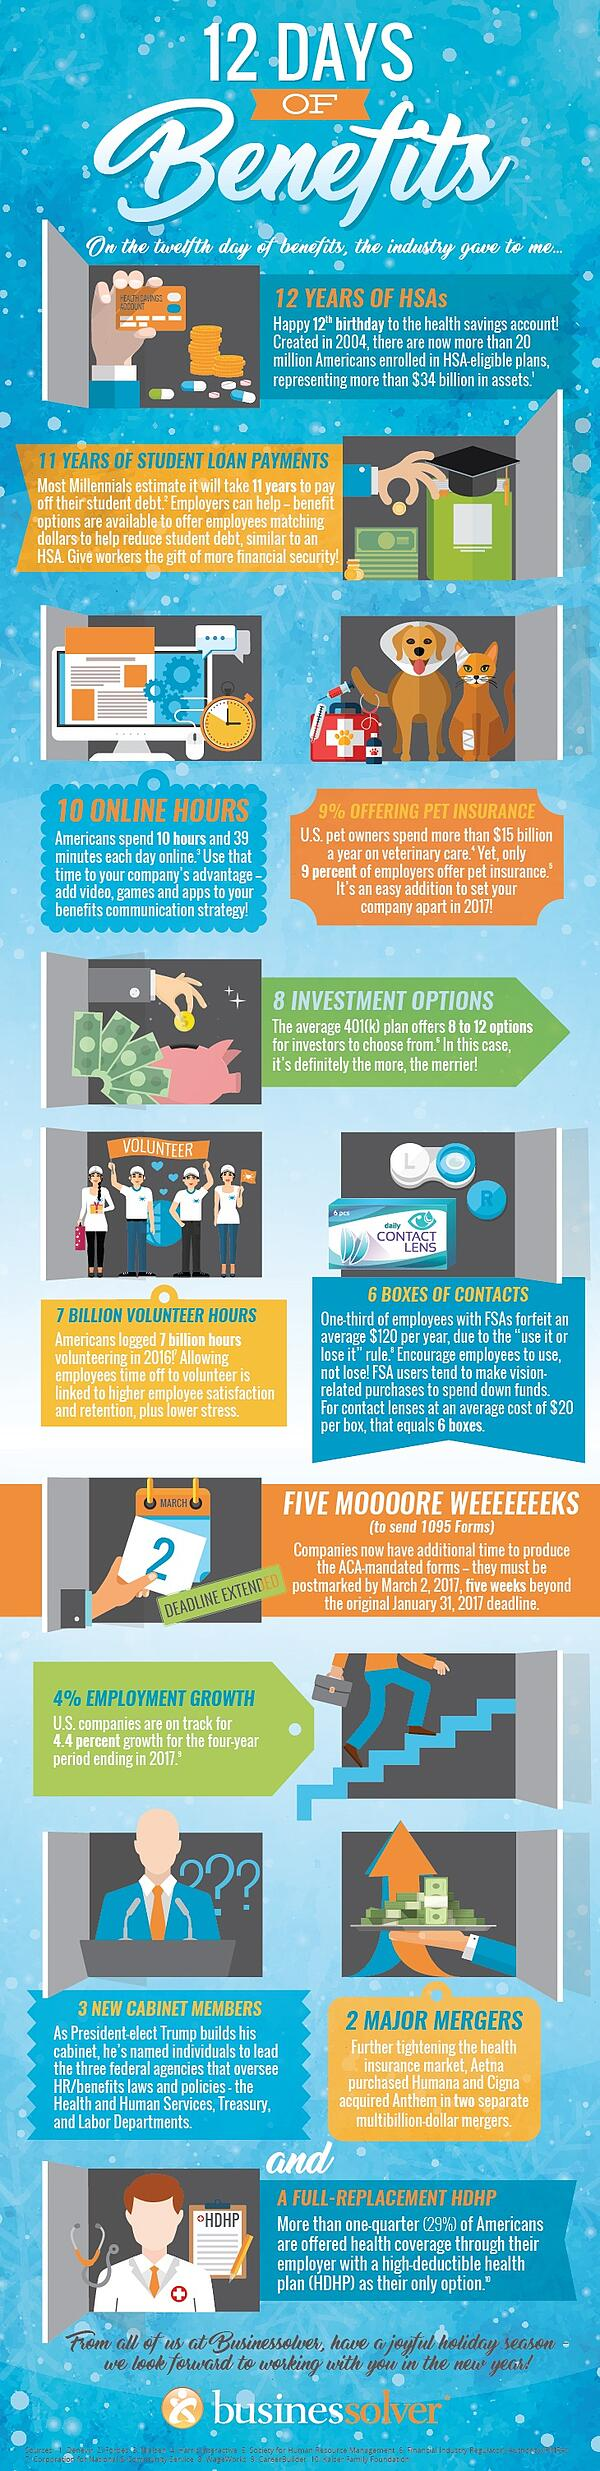 12 Days of Benefits 2016 Infographic